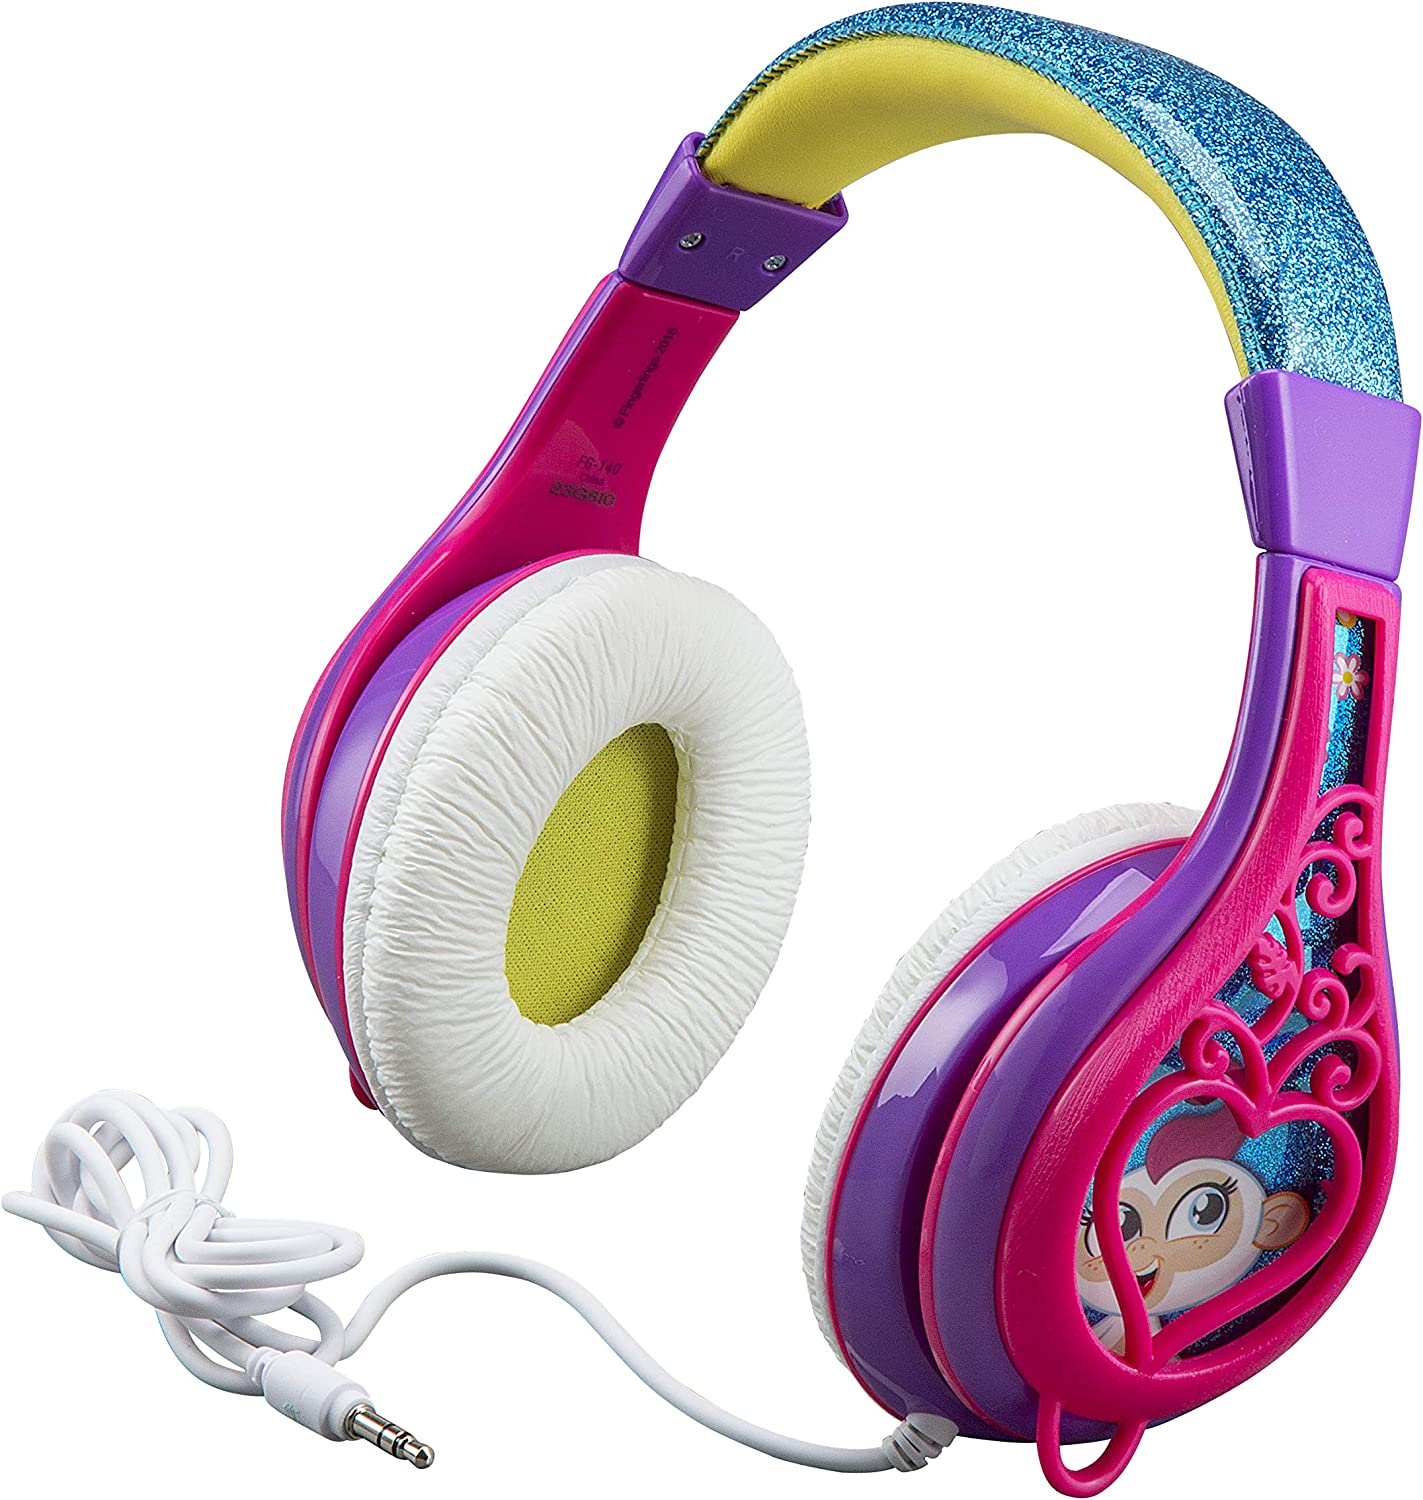 Fingerlings Headphones for Kids with Built in Volume Limiting Feature for Kid Friendly Safe Listening